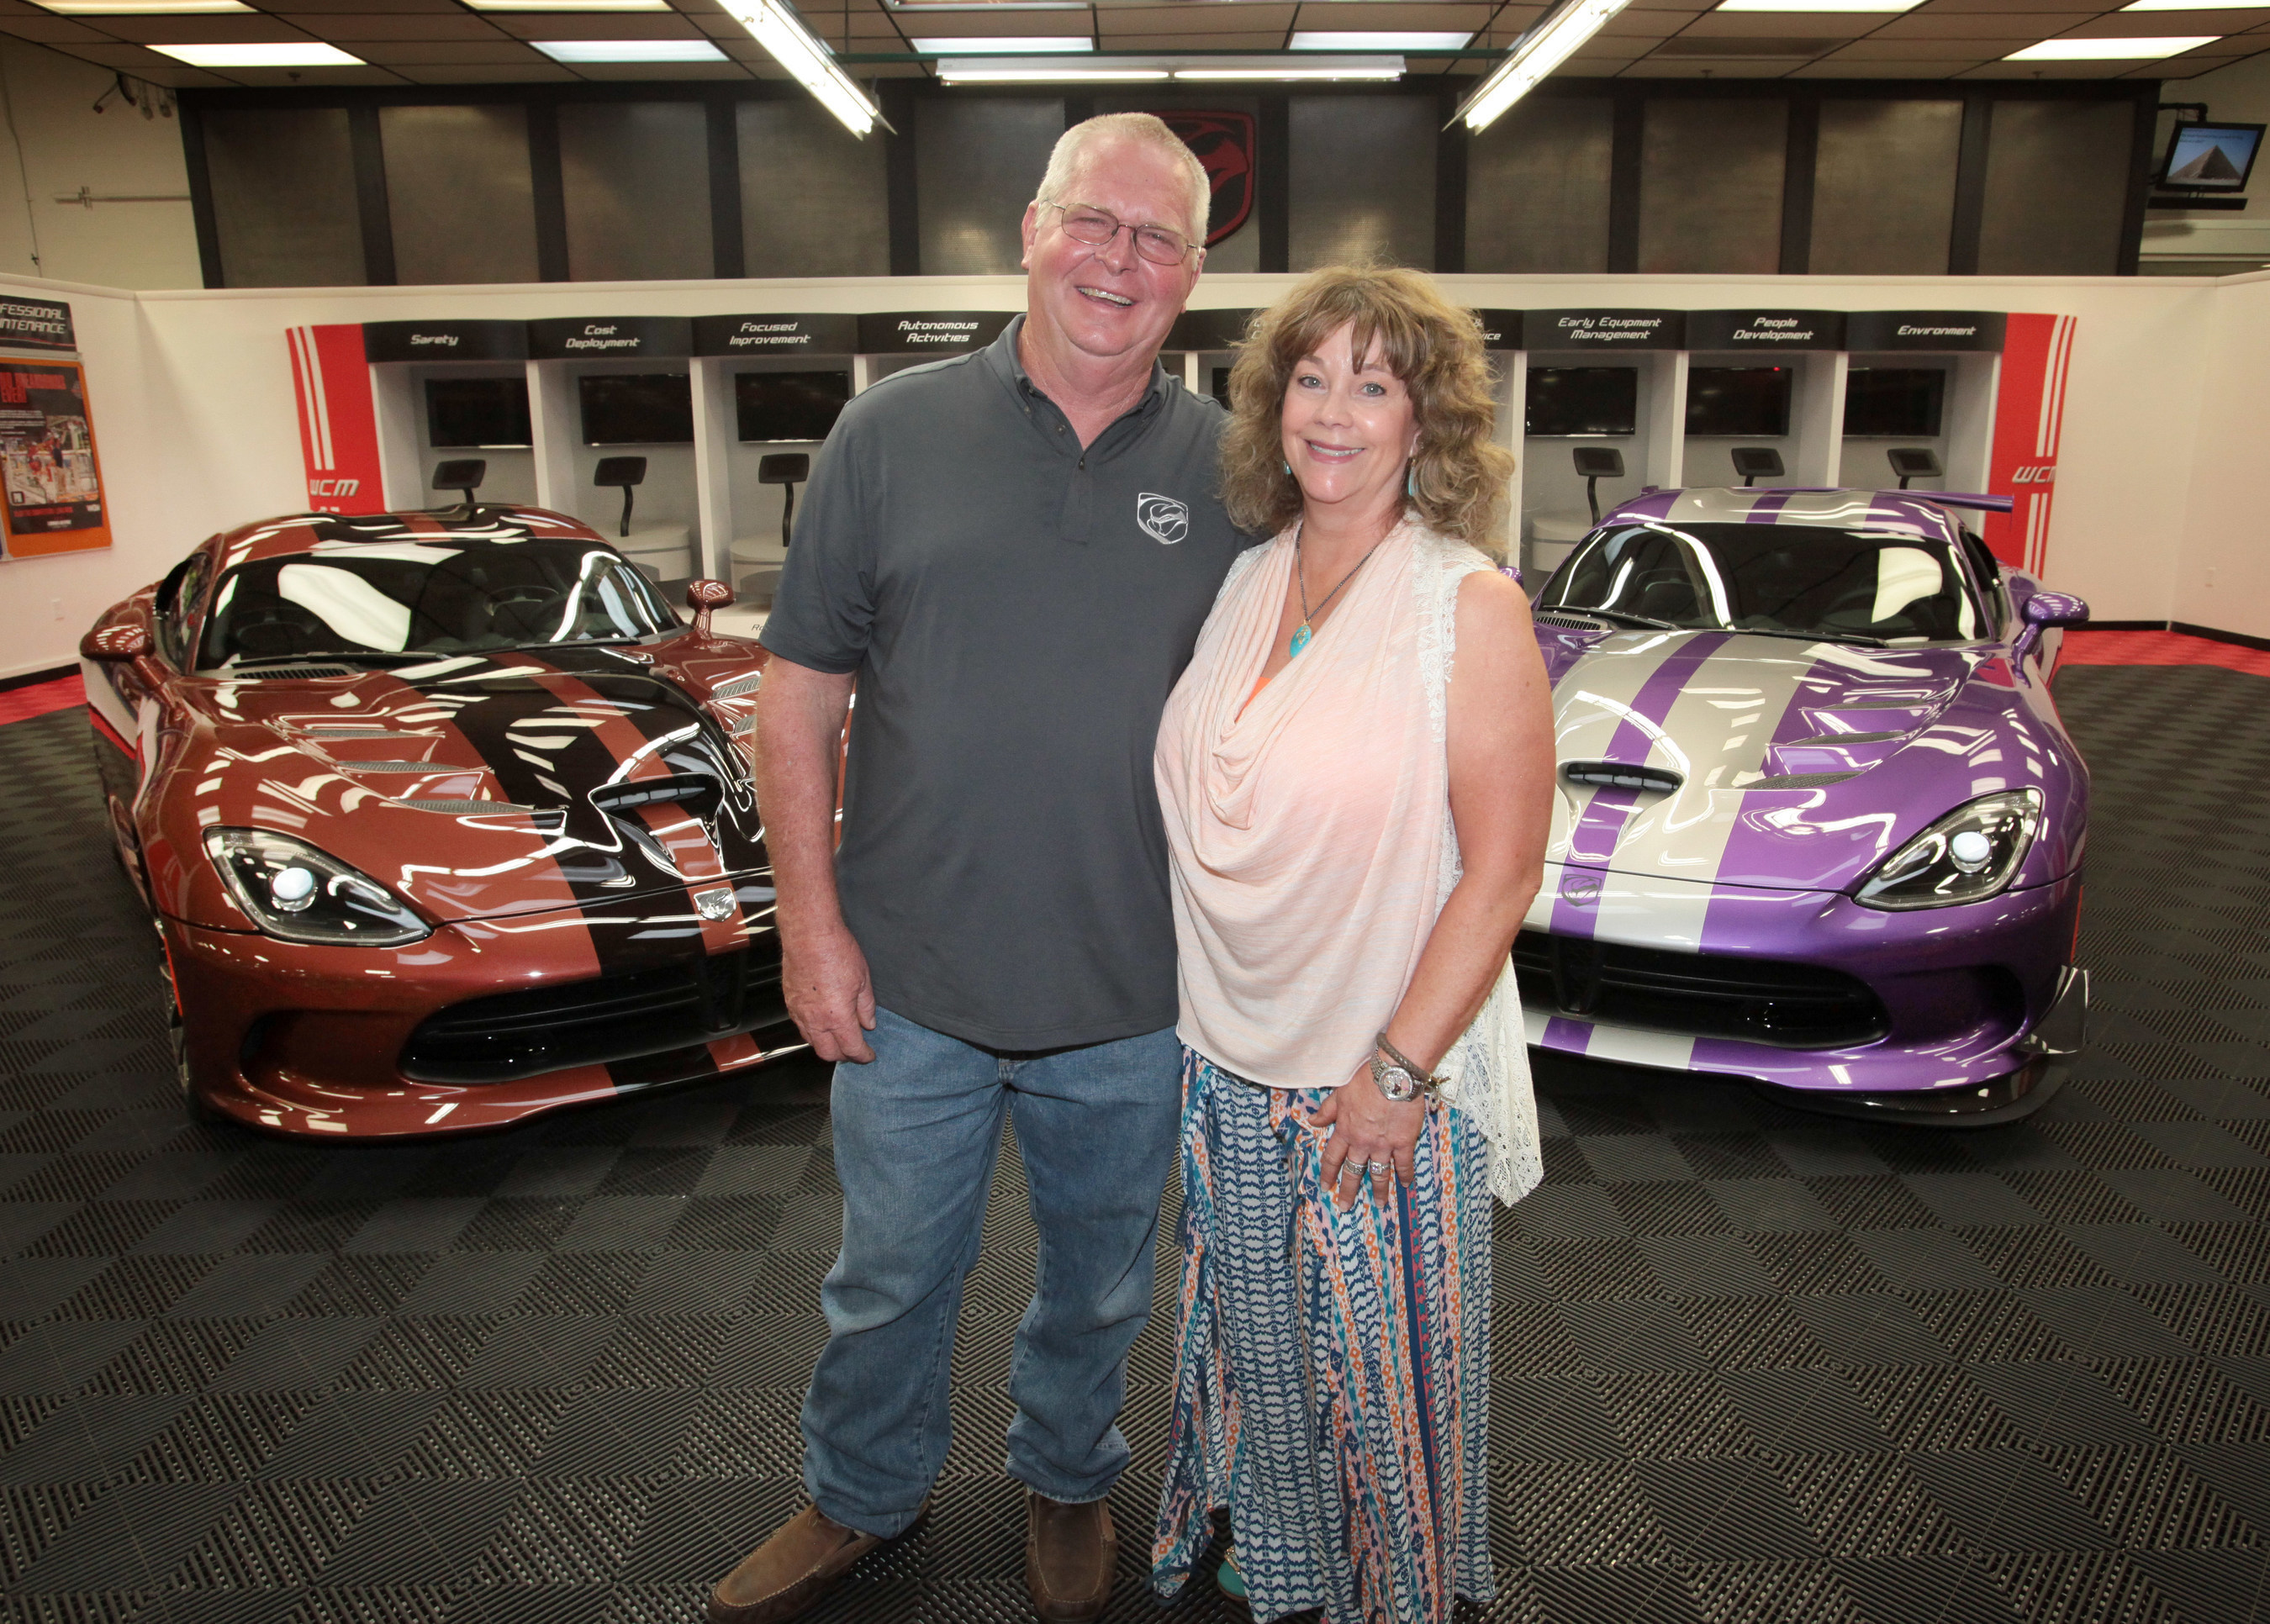 """Dodge Viper owners Wayne and D'Ann Rauh elevate Viper Nation enthusiasm to a whole new level. On Friday, July 24, the couple visits the Conner Avenue Assembly Plant in Detroit to receive keys to not one, but two new customized """"1 of 1"""" Dodge Viper GTC models, making them proud owners of a total of 79 Dodge Vipers. Through the new Viper """"1 of 1"""" customization program, owners can create their very own one-of-a-kind Snake. No two customers can order the same configuration, including color, in the same model..."""